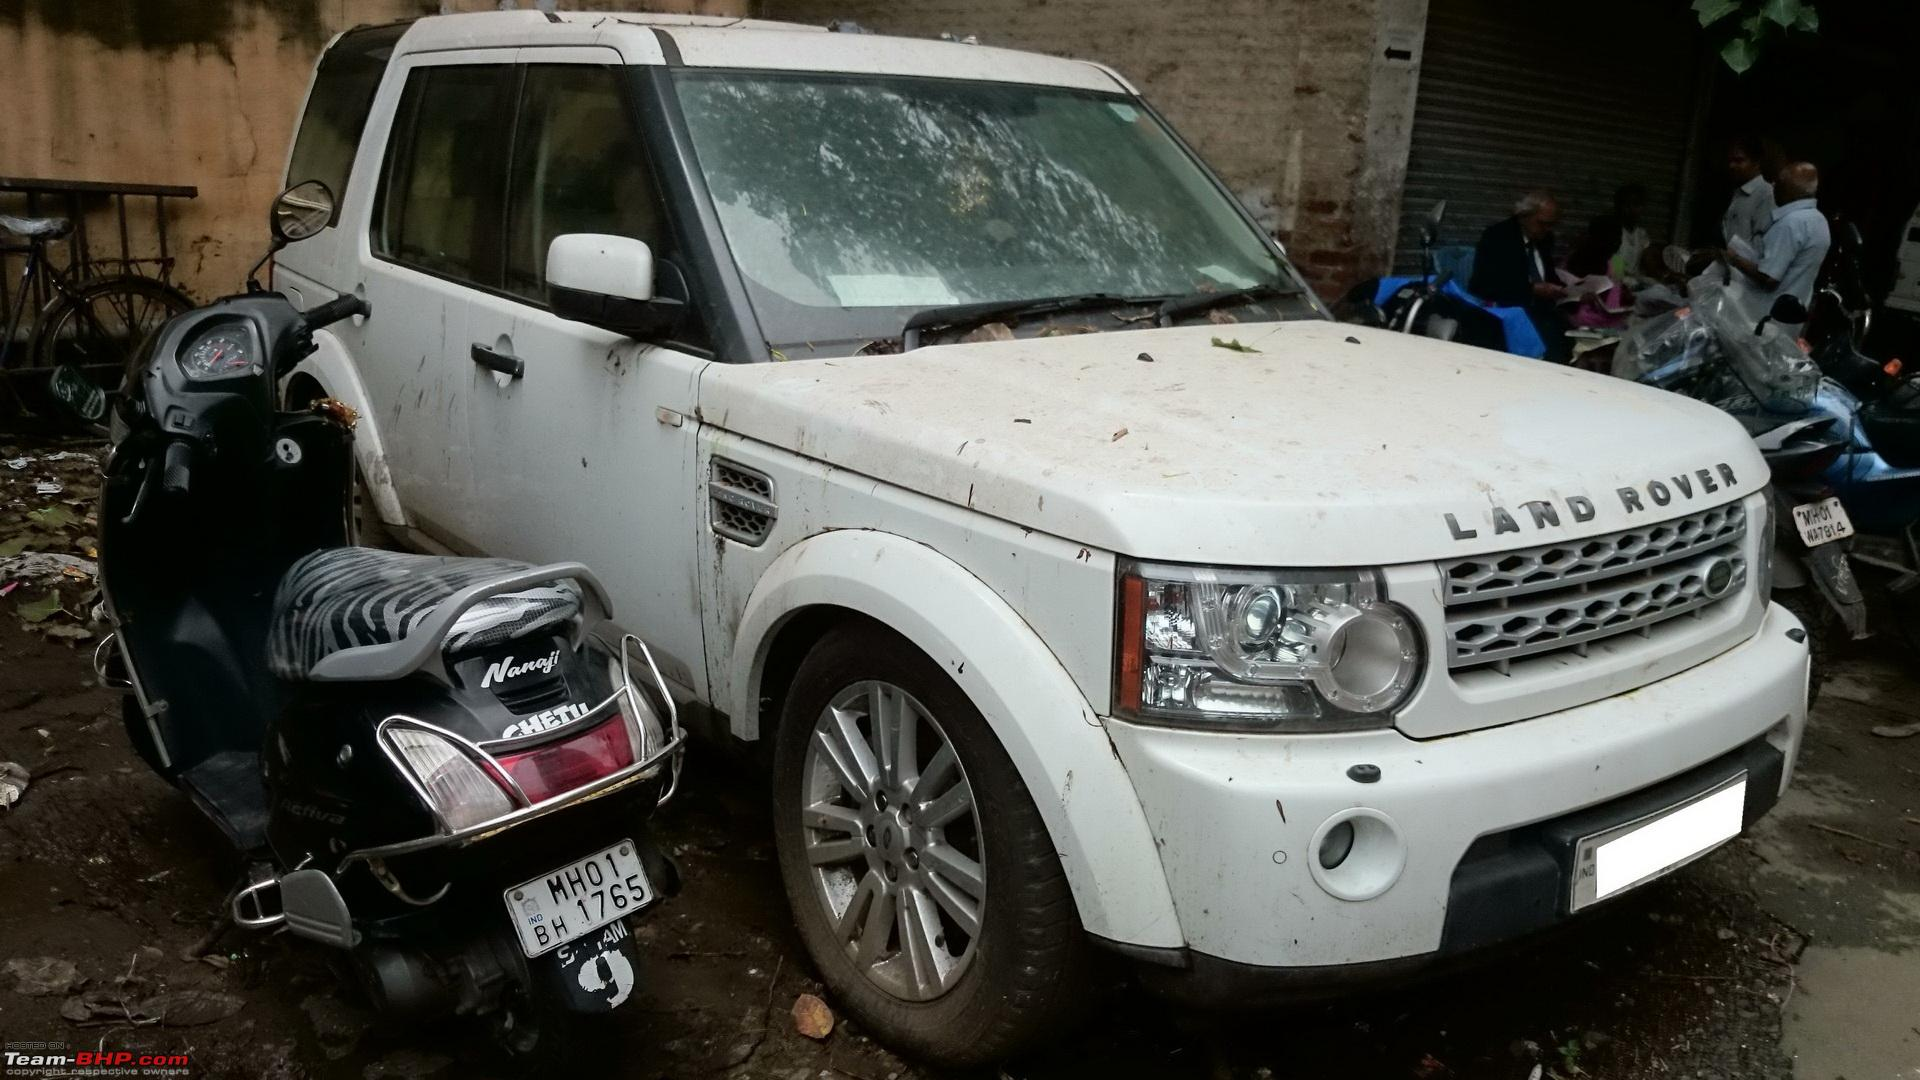 Land rover discovery 4 a near death experience continuous problems poor service